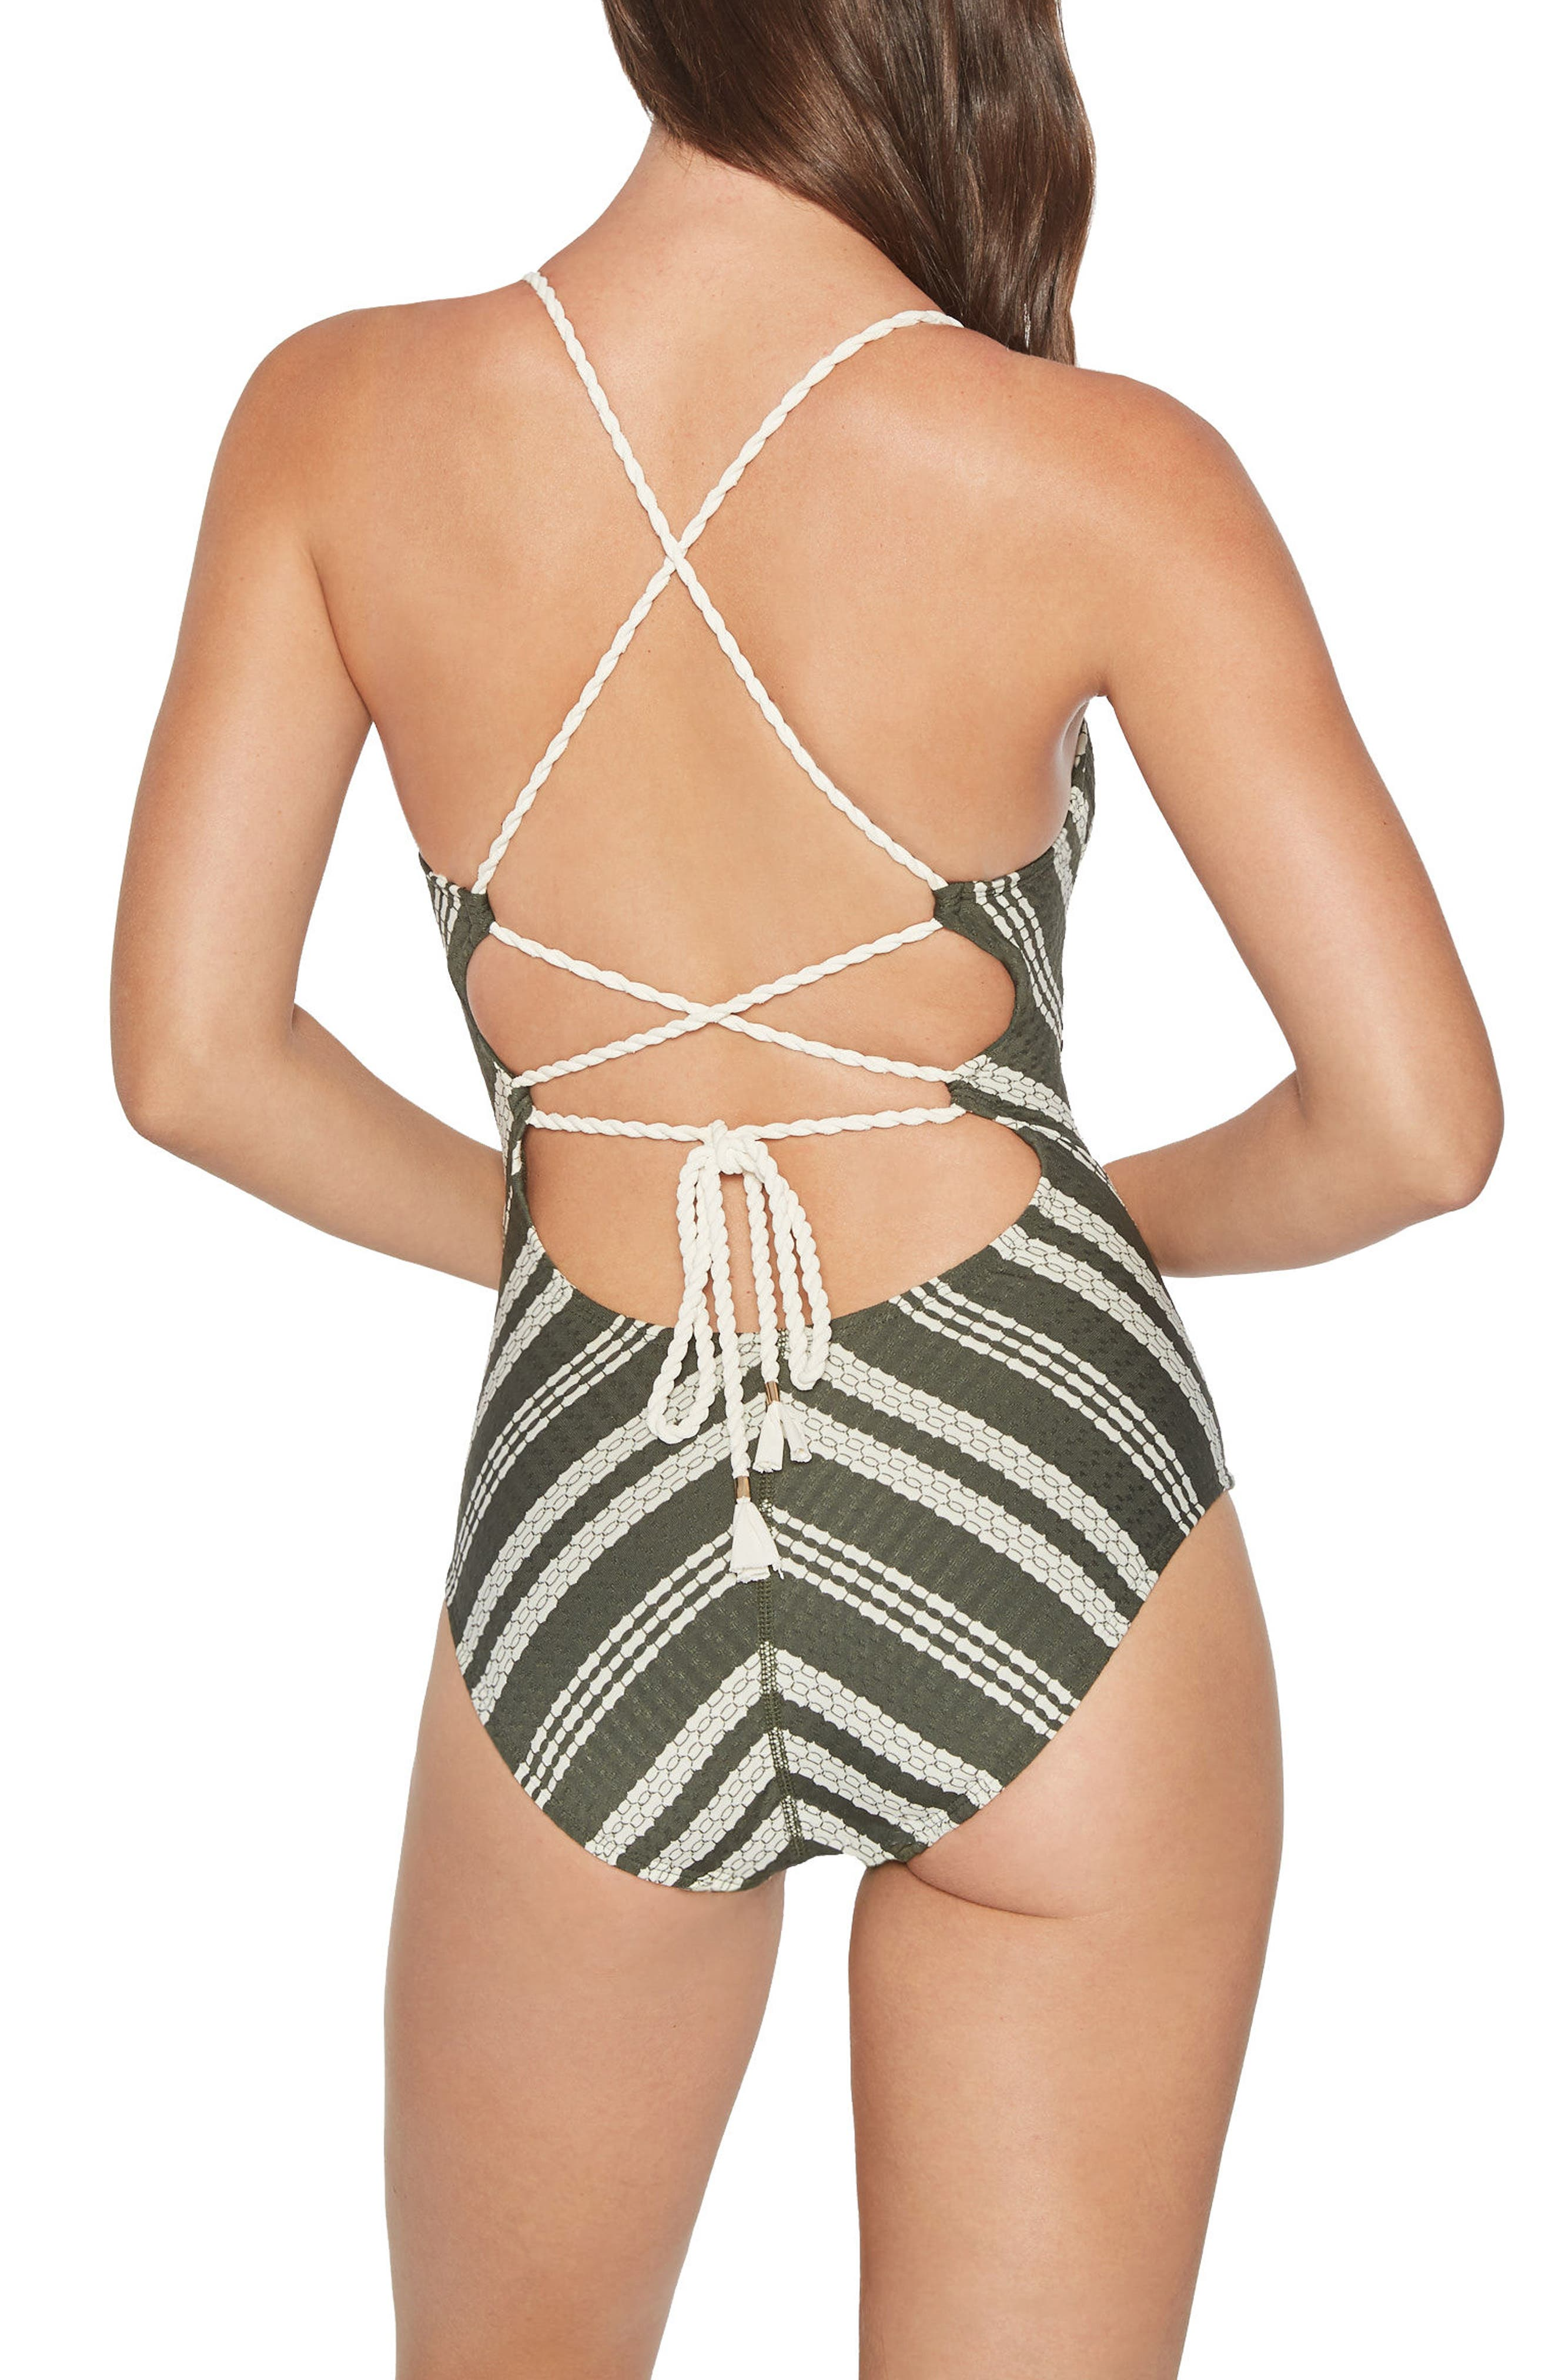 Livvy One-Piece Swimsuit,                             Alternate thumbnail 2, color,                             Deep Forest